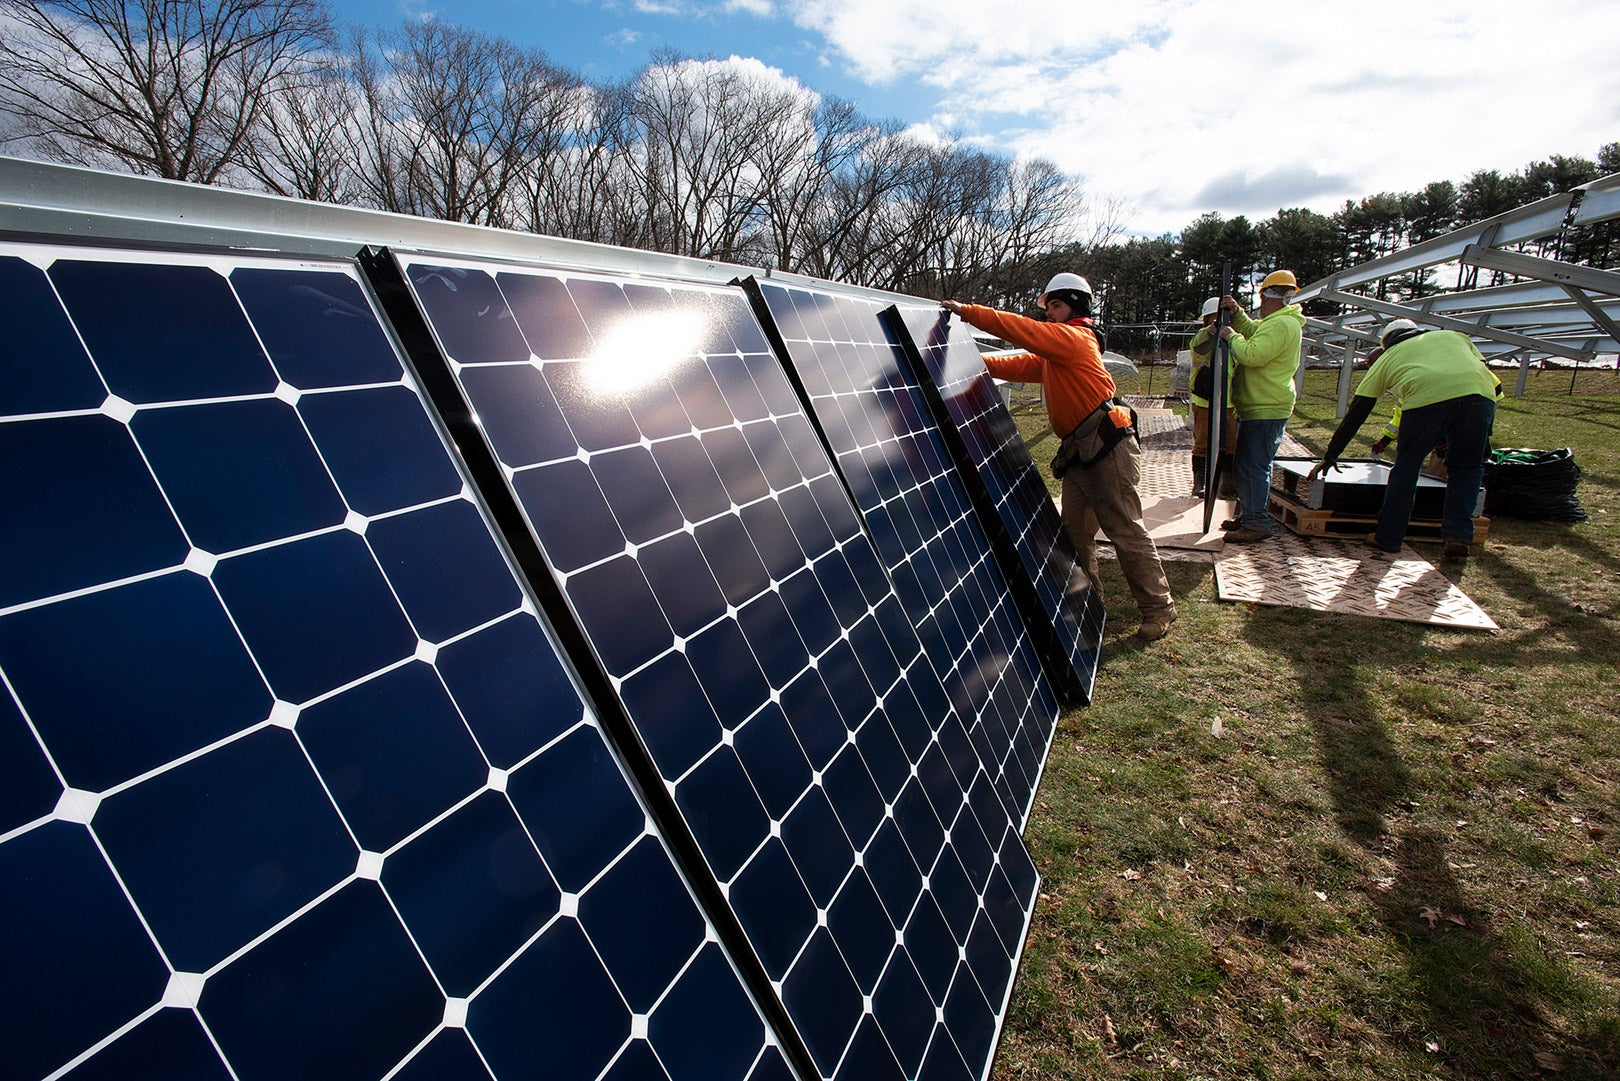 Installing solar panels at the Arnold Arboretum's Weld Hill property